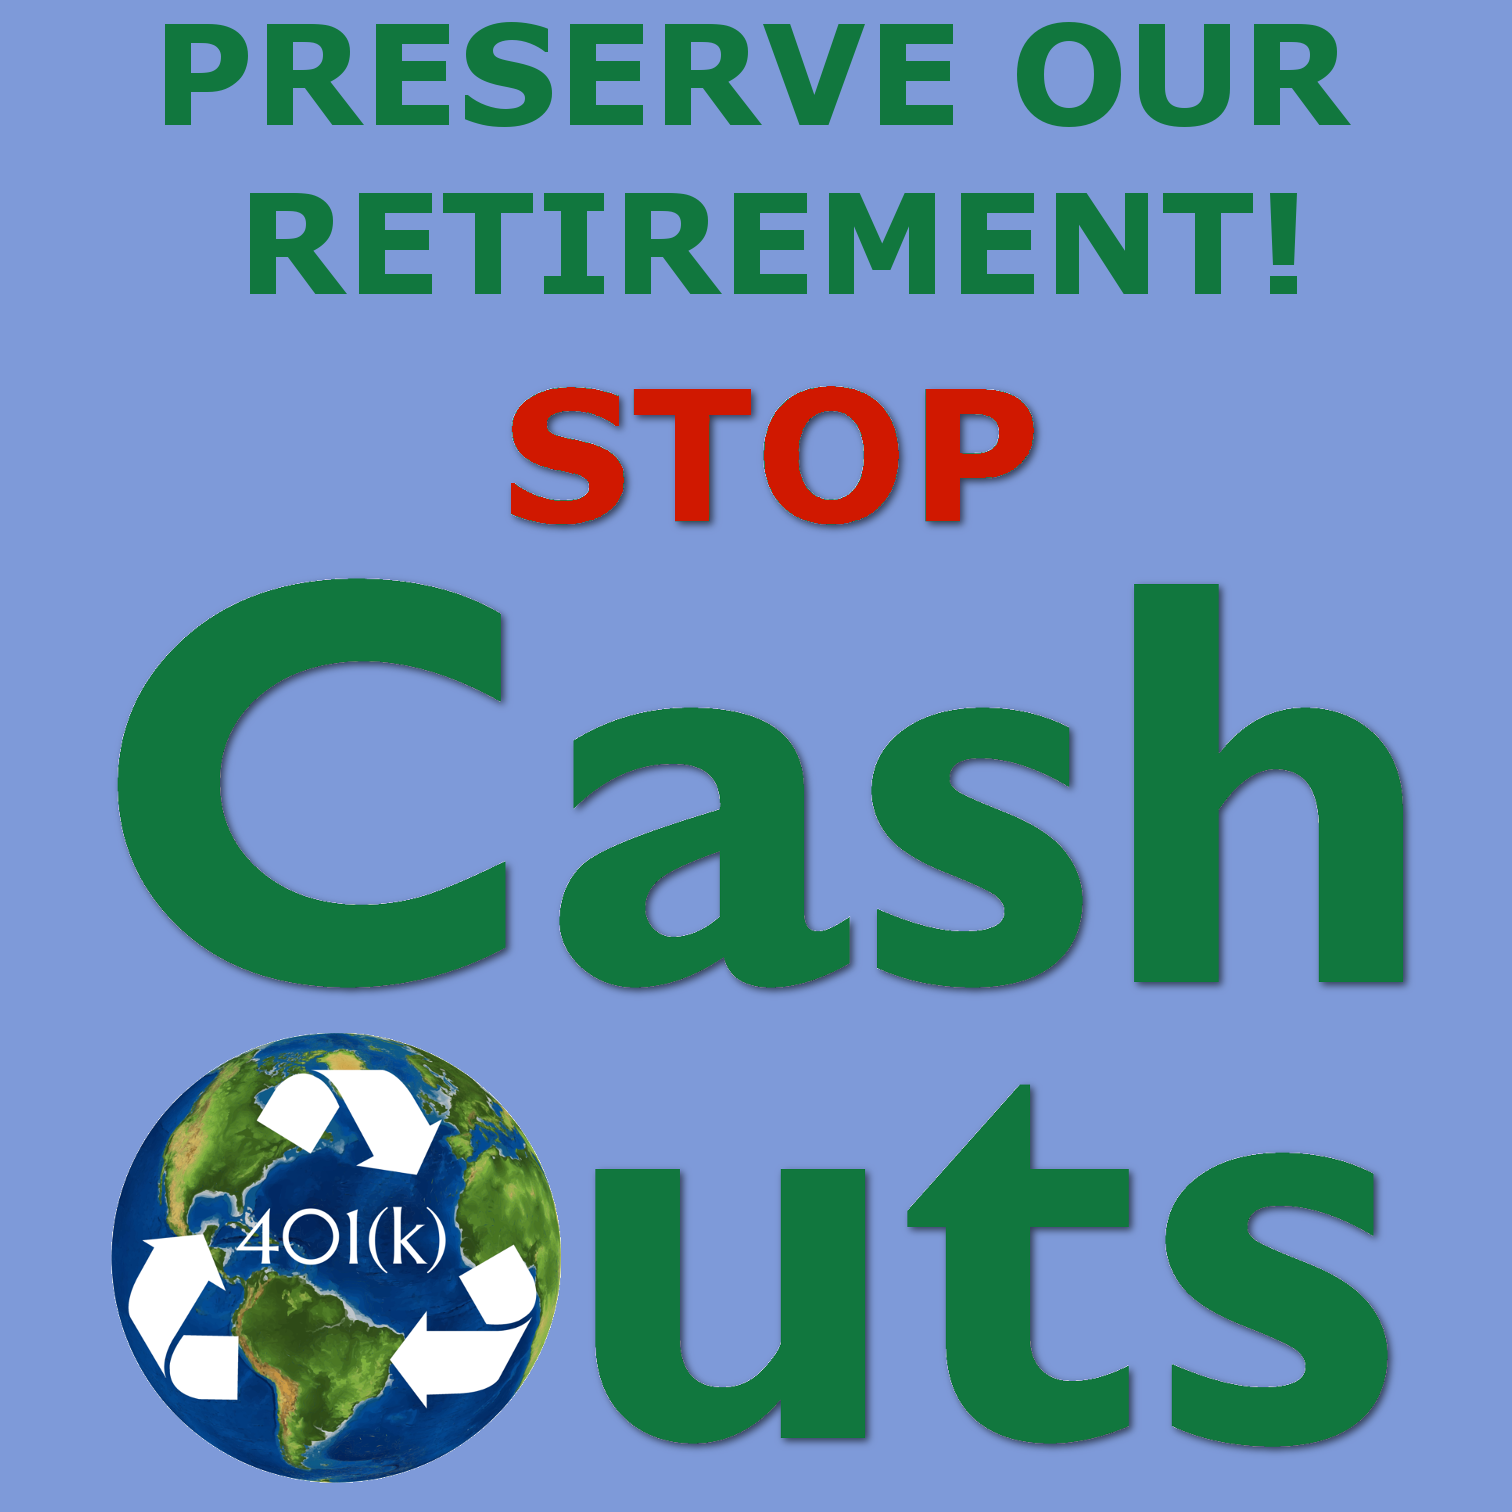 Earth Day Preserve Retirement Stop Cash Outs